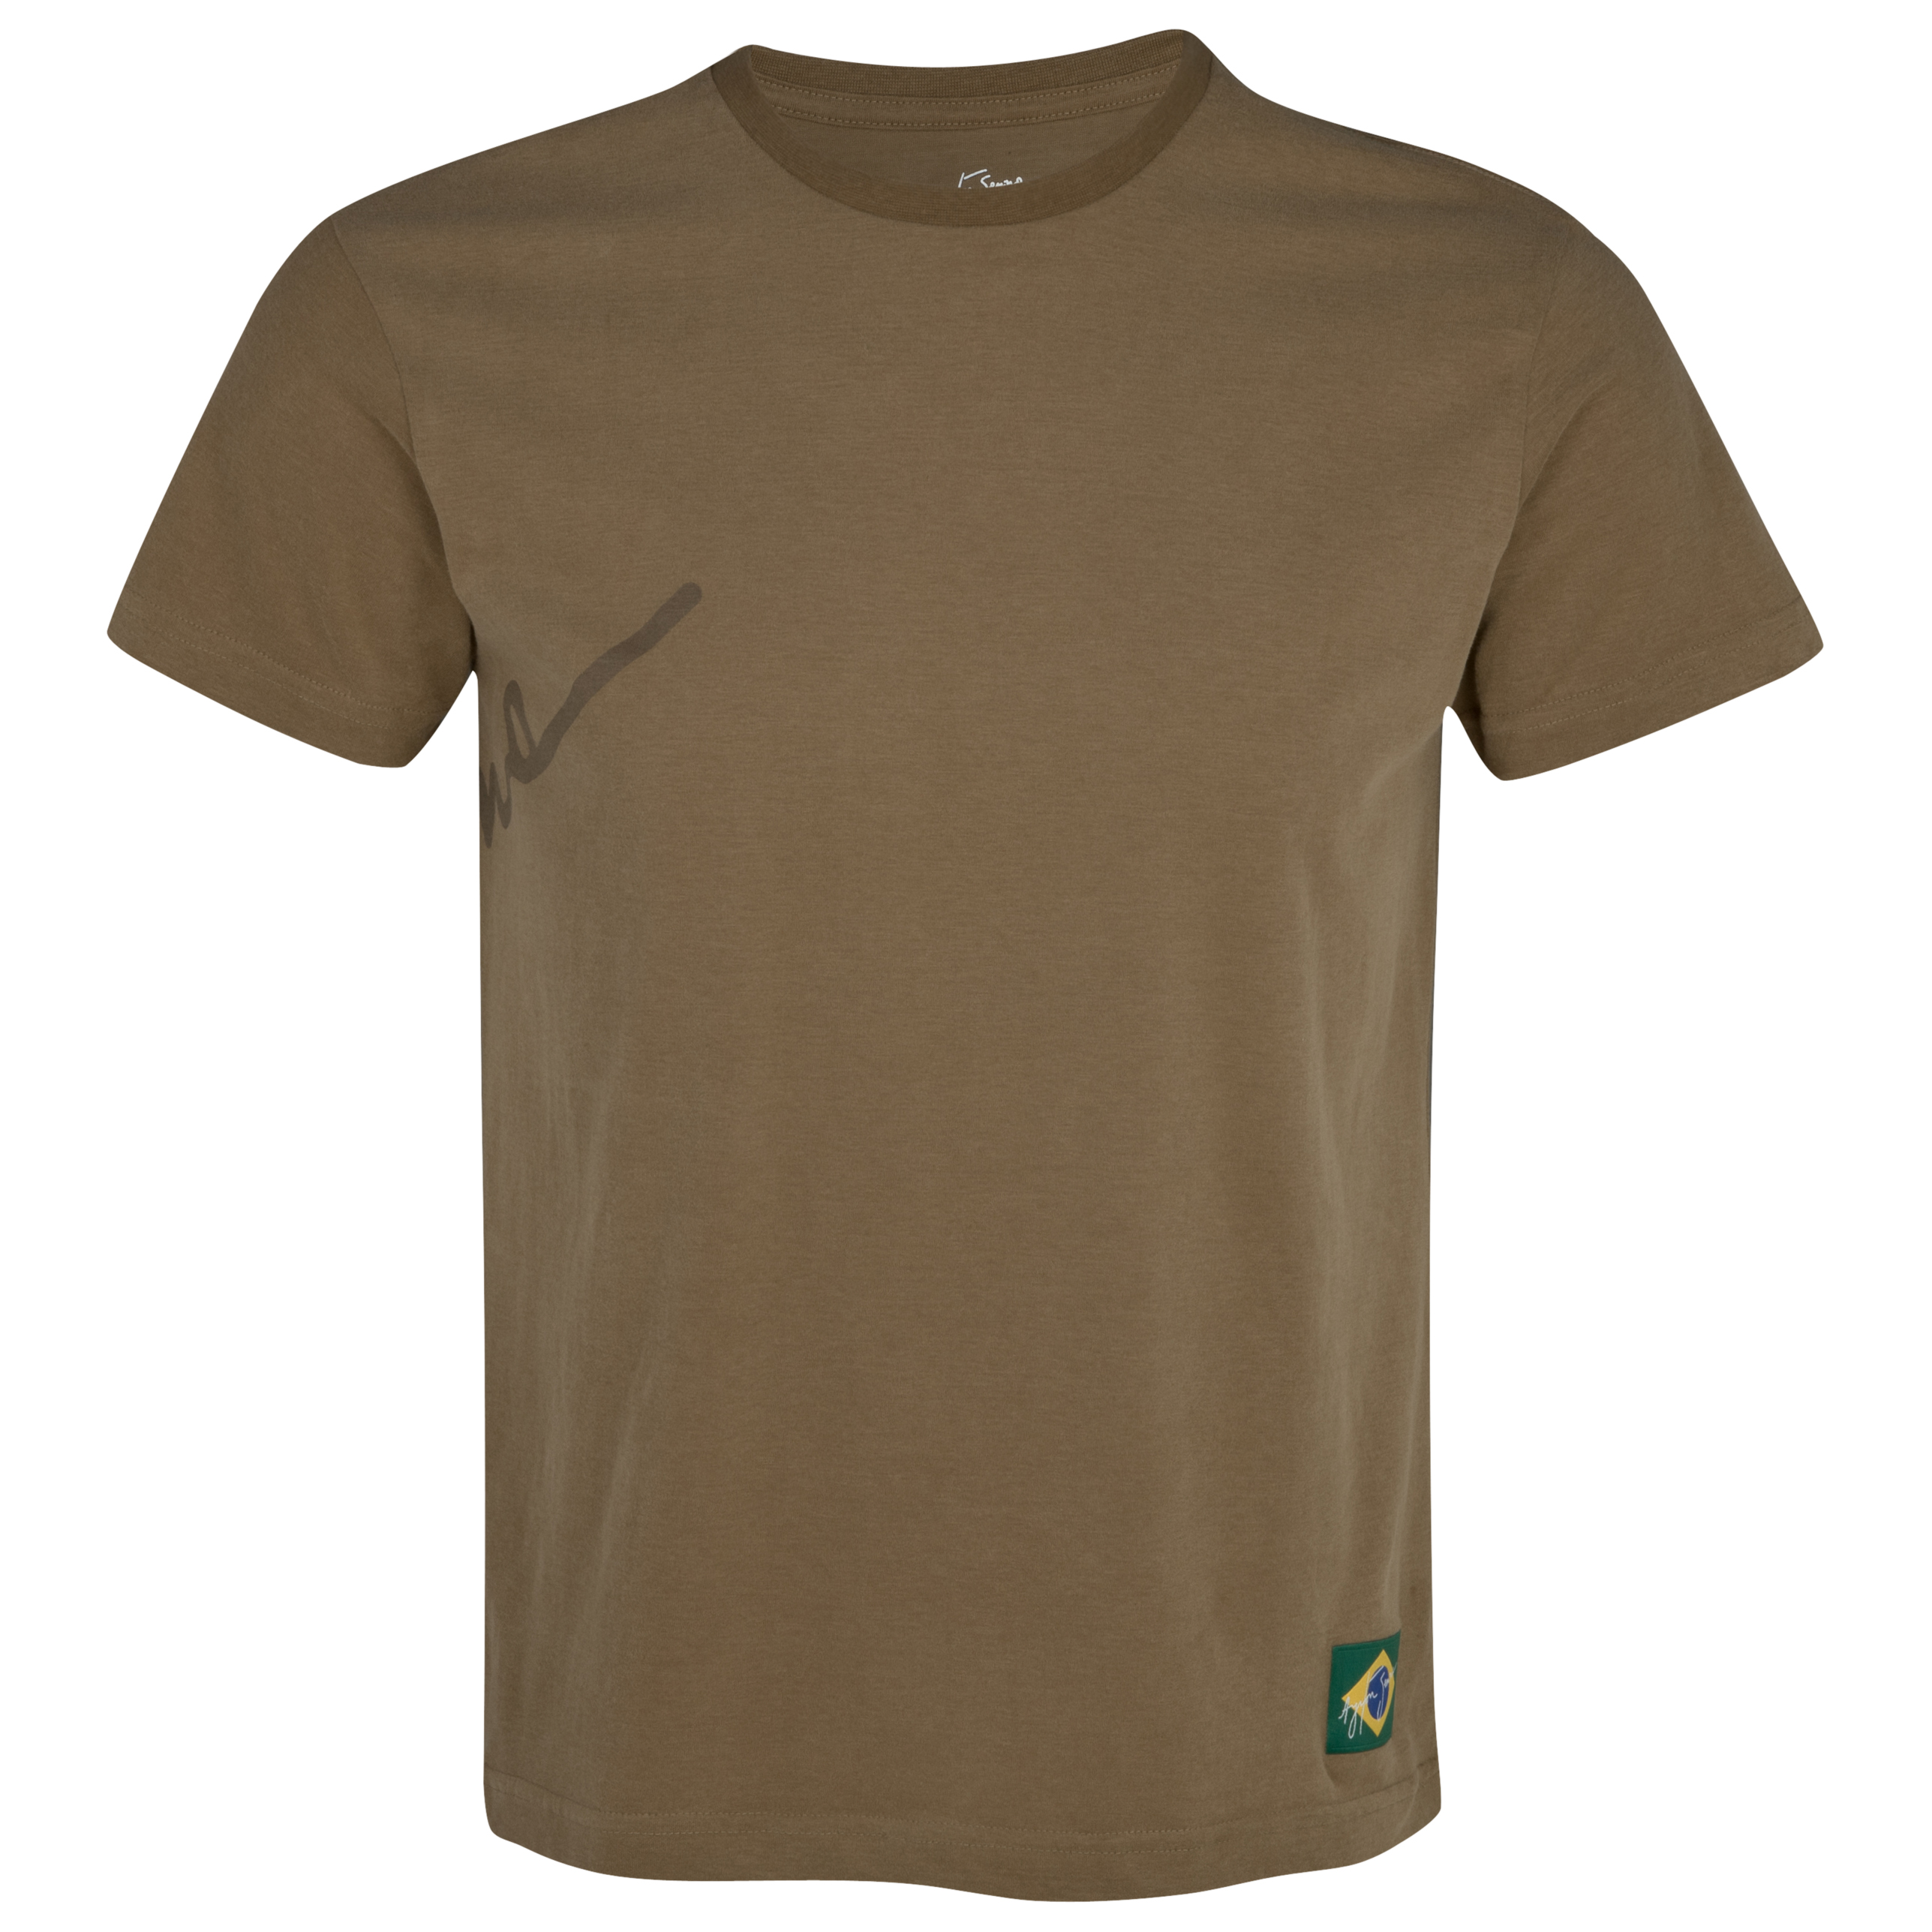 Ayrton Senna Back Signature T-Shirt - Brown